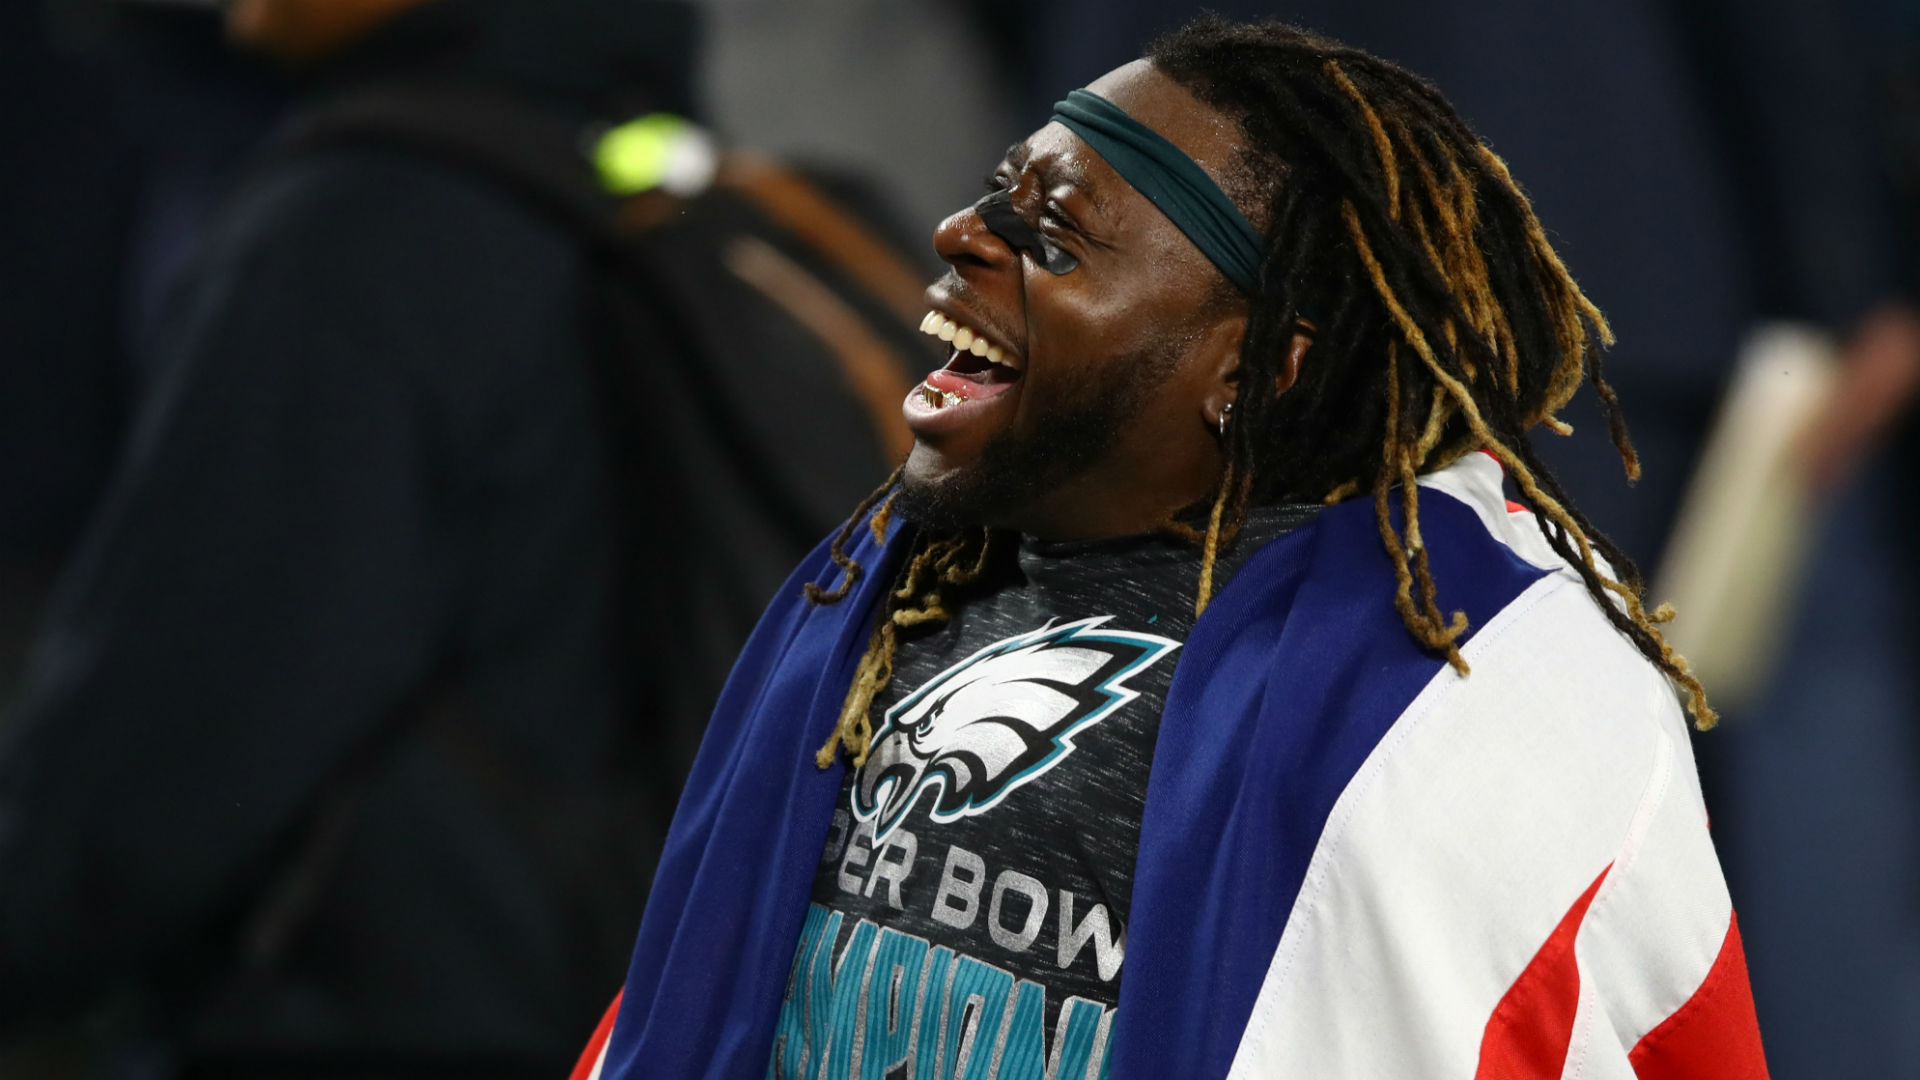 TMZ: Jay Ajayi sued for trashing mansion, allegedly pushing owner